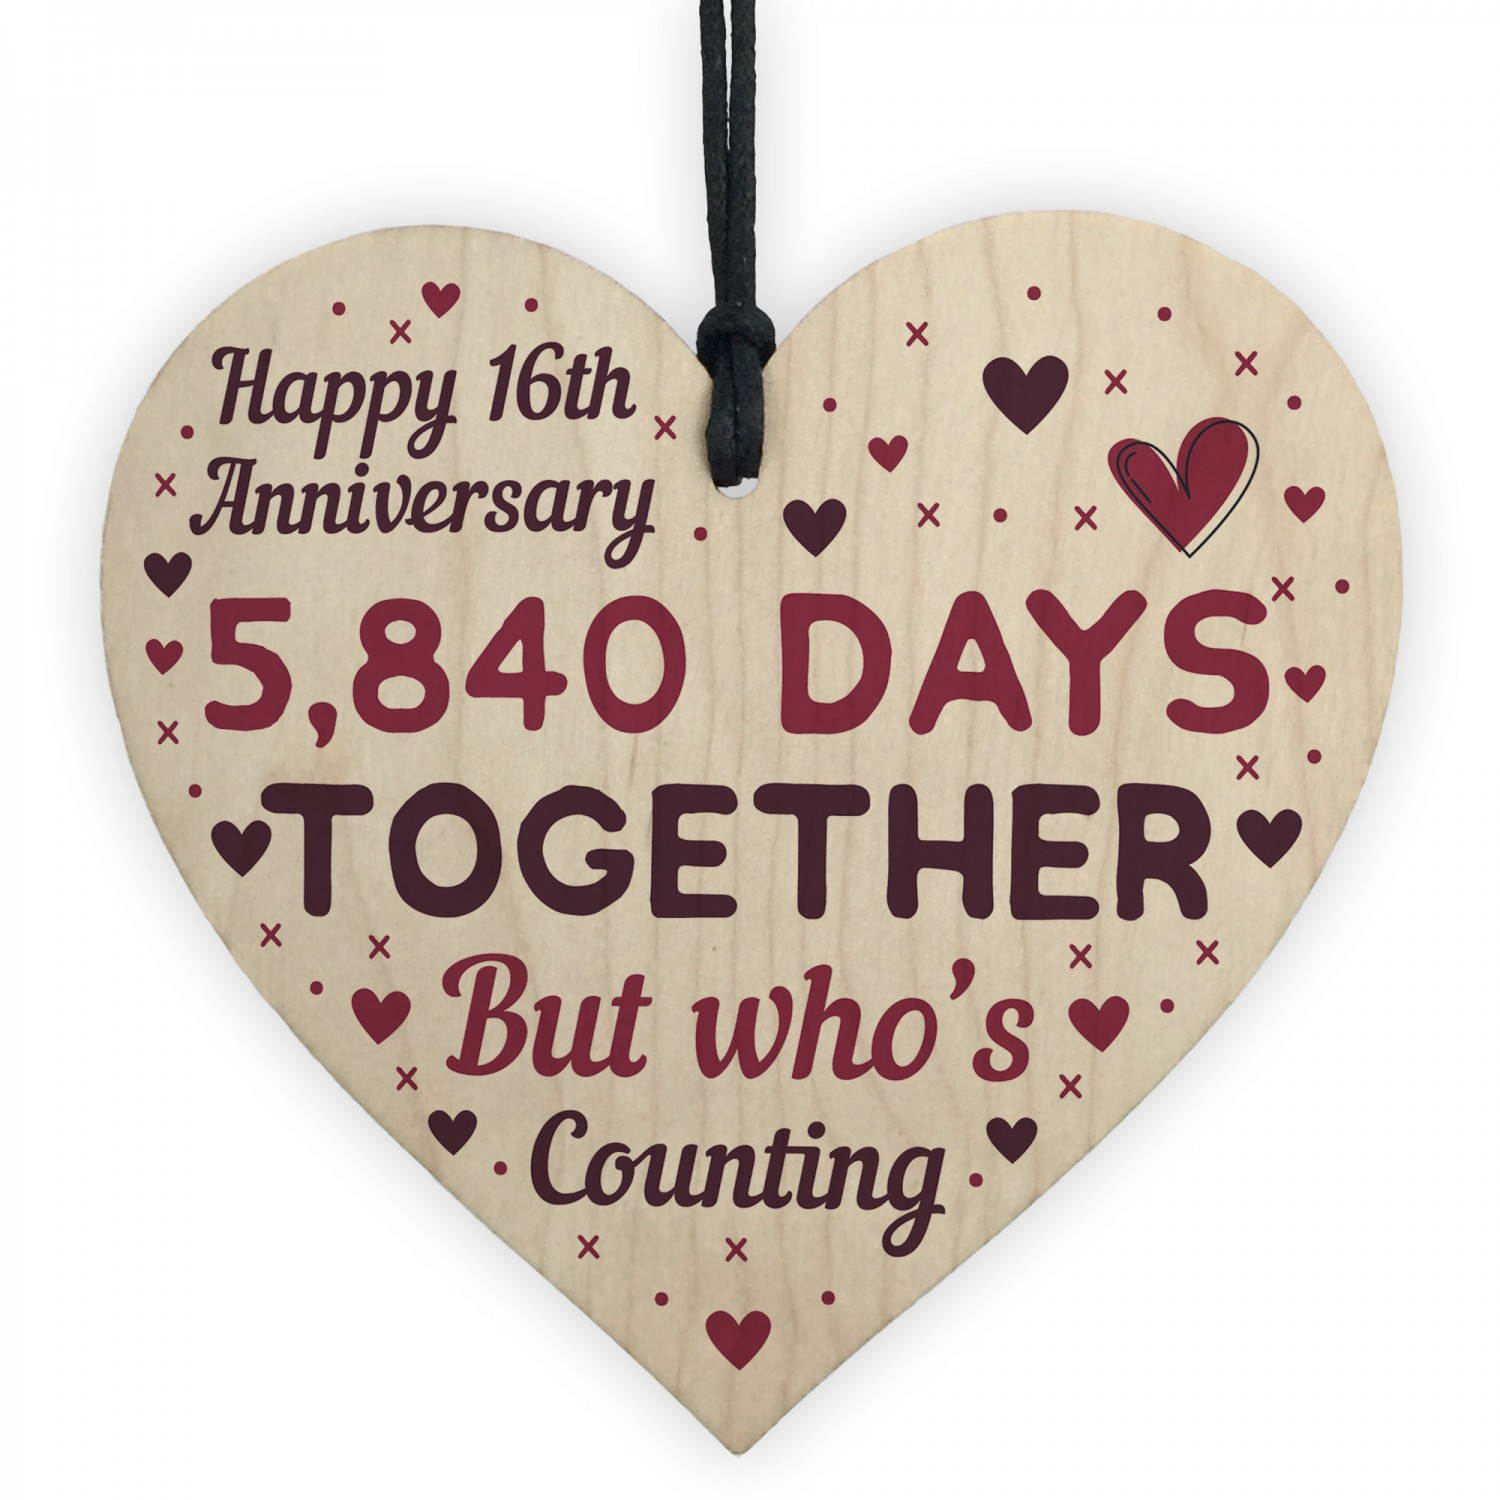 What Is The 16th Wedding Anniversary Gift: Handmade Wood Heart Gift To Celebrate 16th Wedding Anniversary